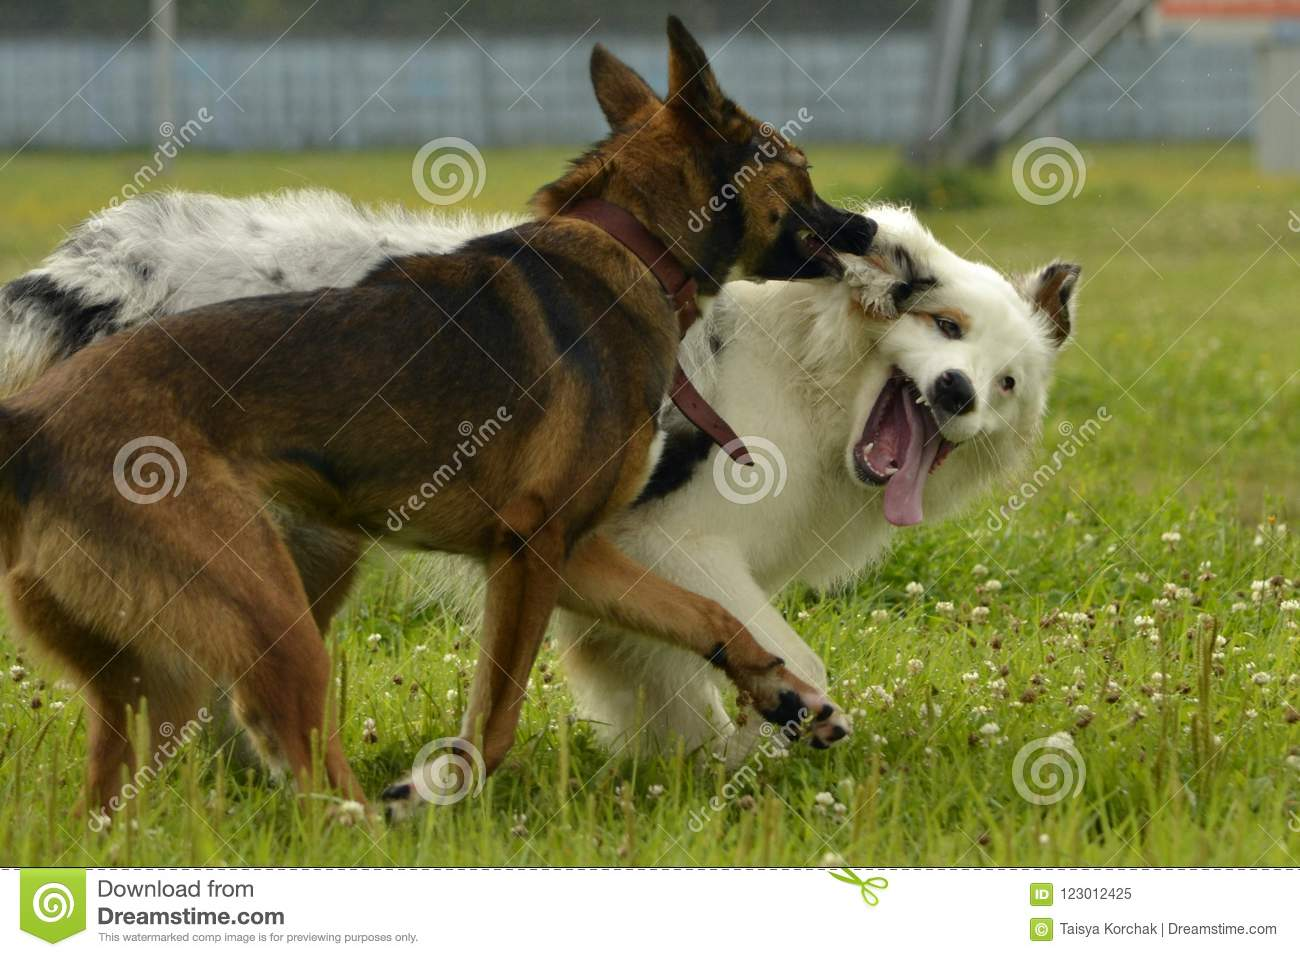 Dogs Play With Each Other Young Australian Shepherd Dog Aussie Merry Fuss Puppies Aggressive Dog Training Of Dogs Puppies E Stock Image Image Of Emotion Game 123012425